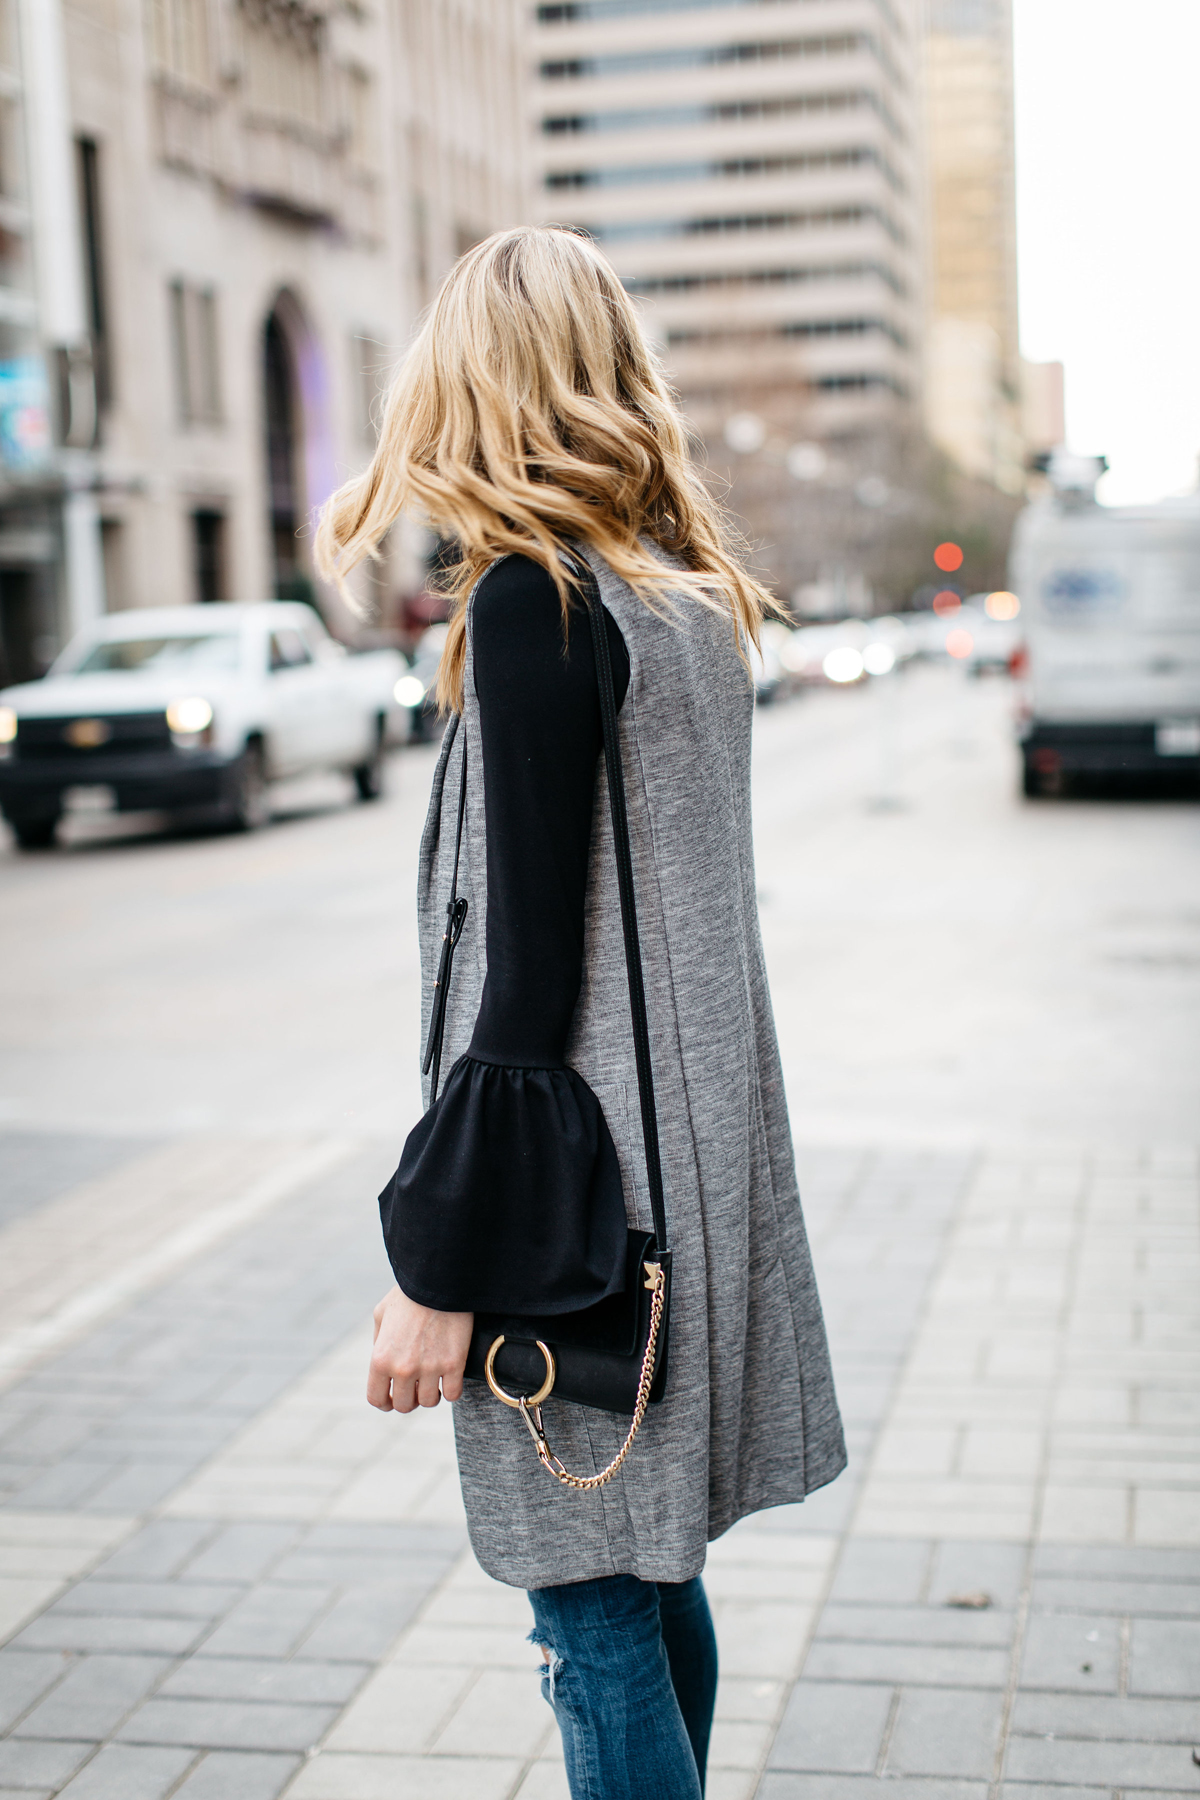 Fall Outfit, Winter Outfit, Long Grey Vest, Black Bell Sleeve Top, Chloe Faye Handbag